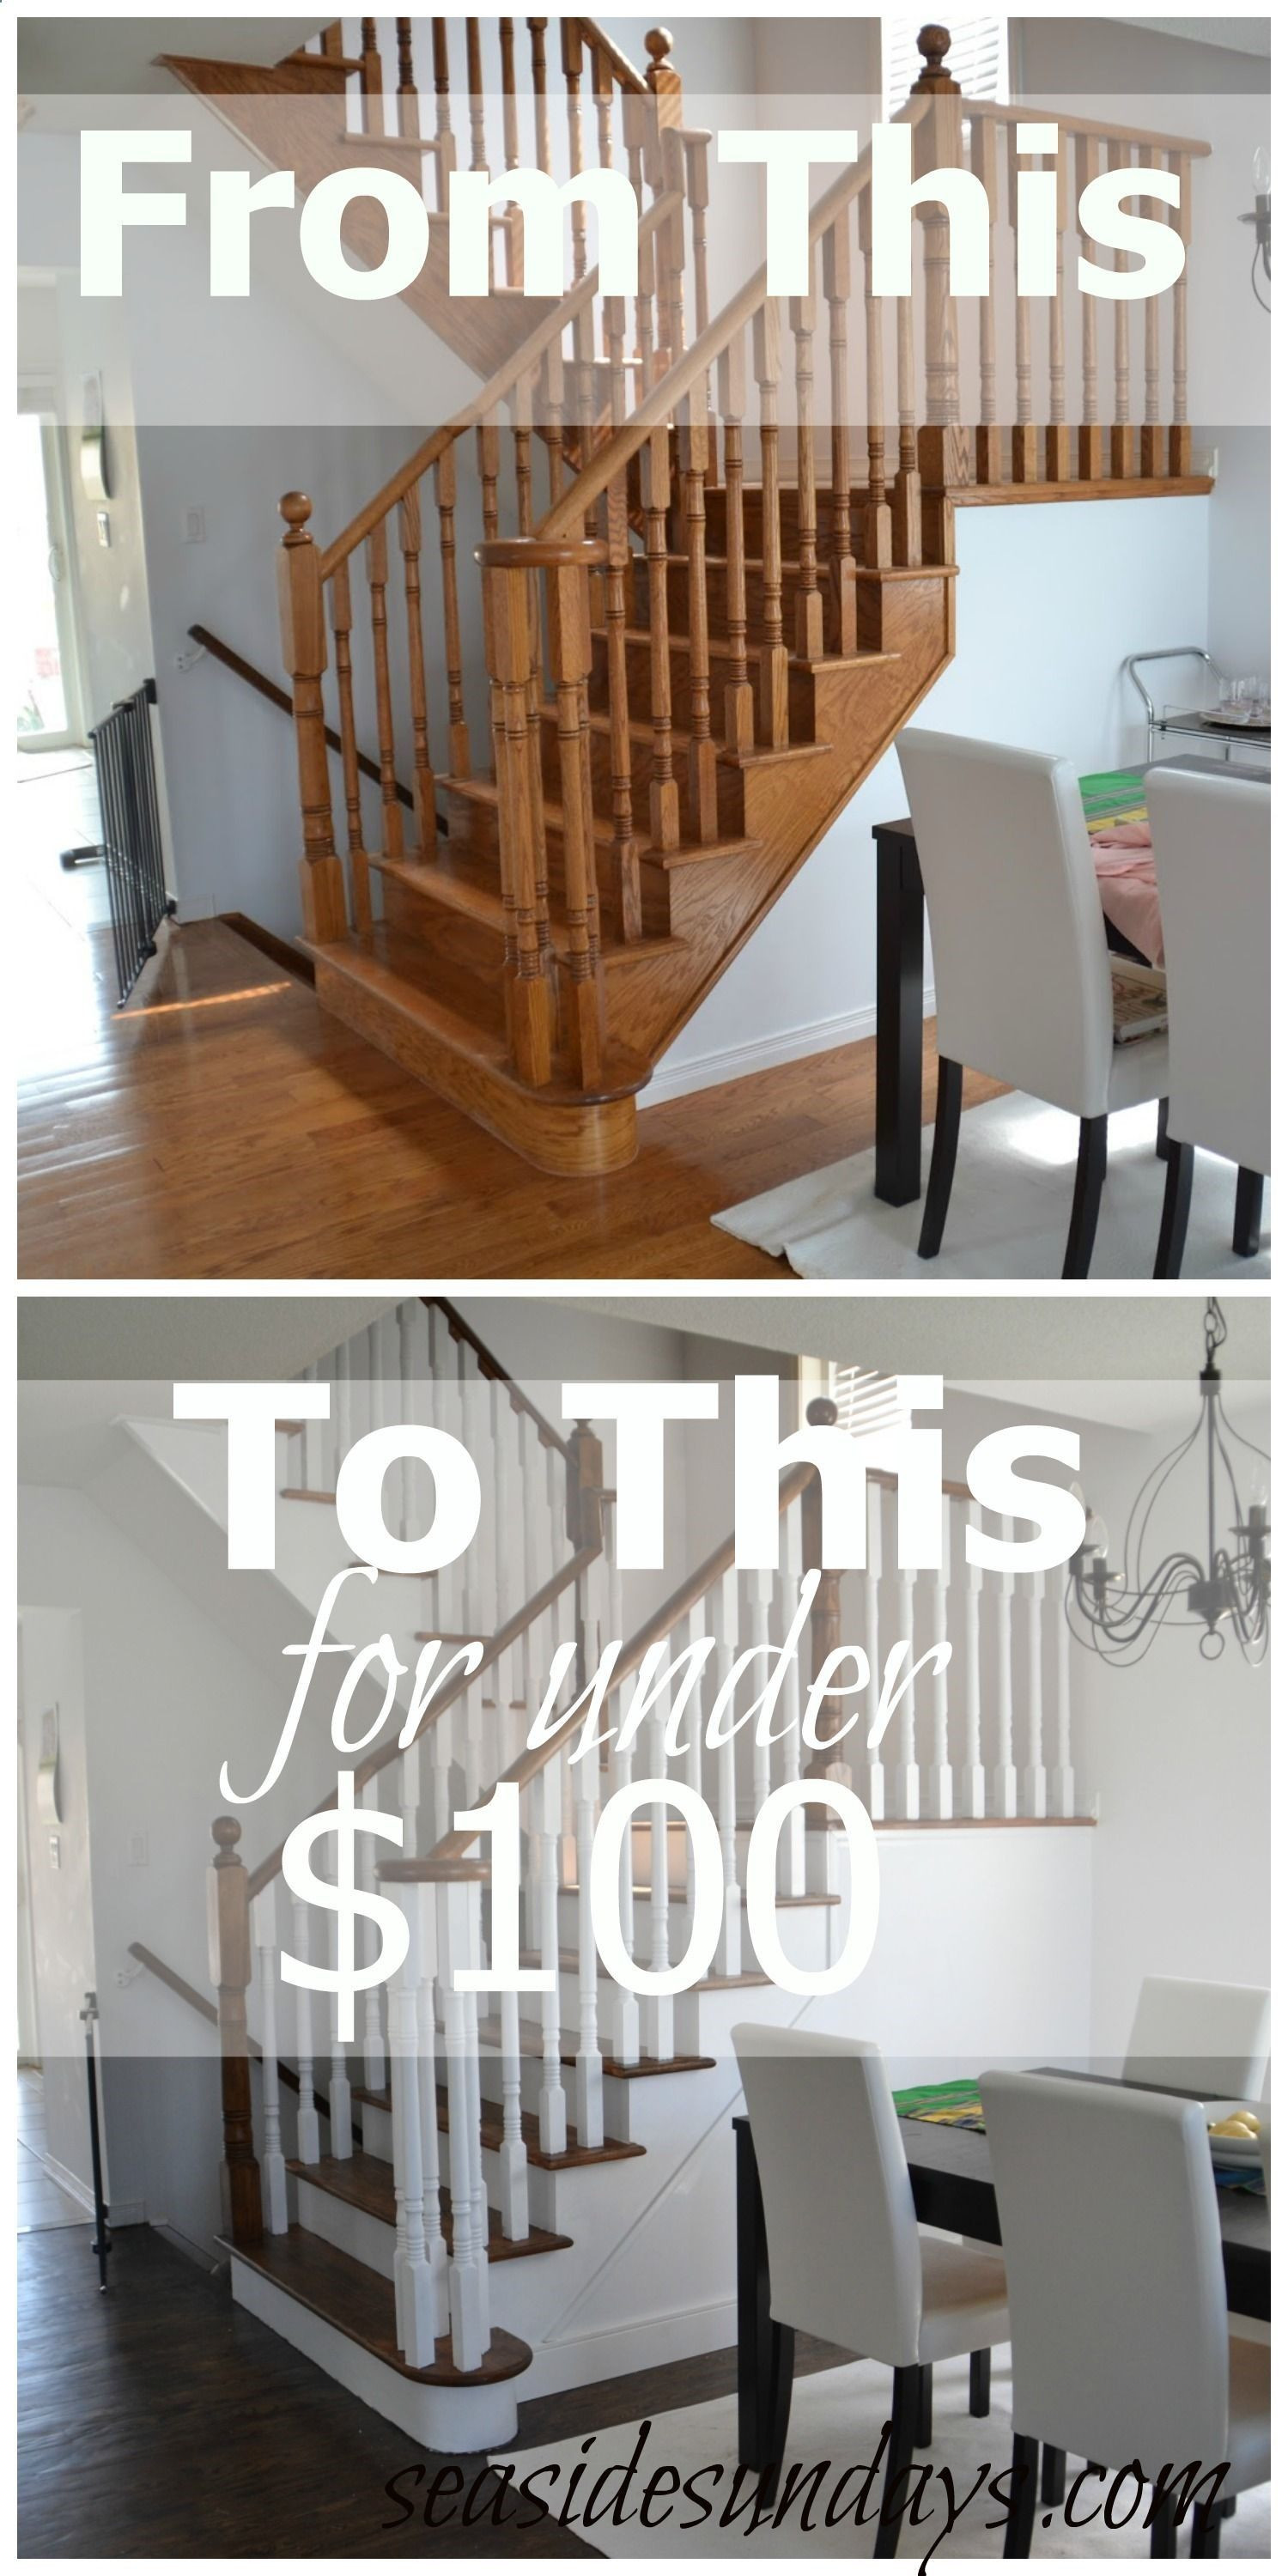 how much to refinish hardwood floors yourself of wood profit woodworking how to refinish hardwood floors diy throughout wood profit woodworking how to refinish hardwood floors diy refinish and stain stairs